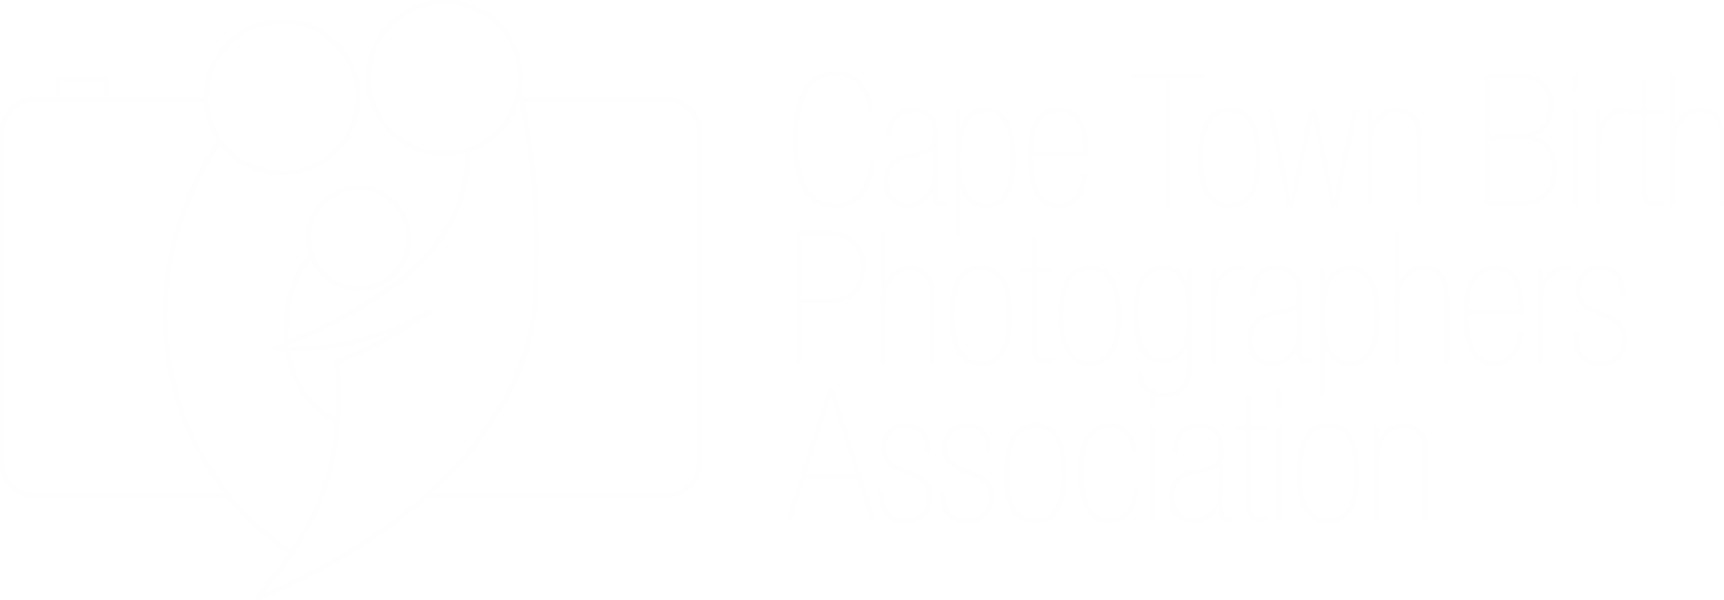 Cape Town Birth Photographers Association